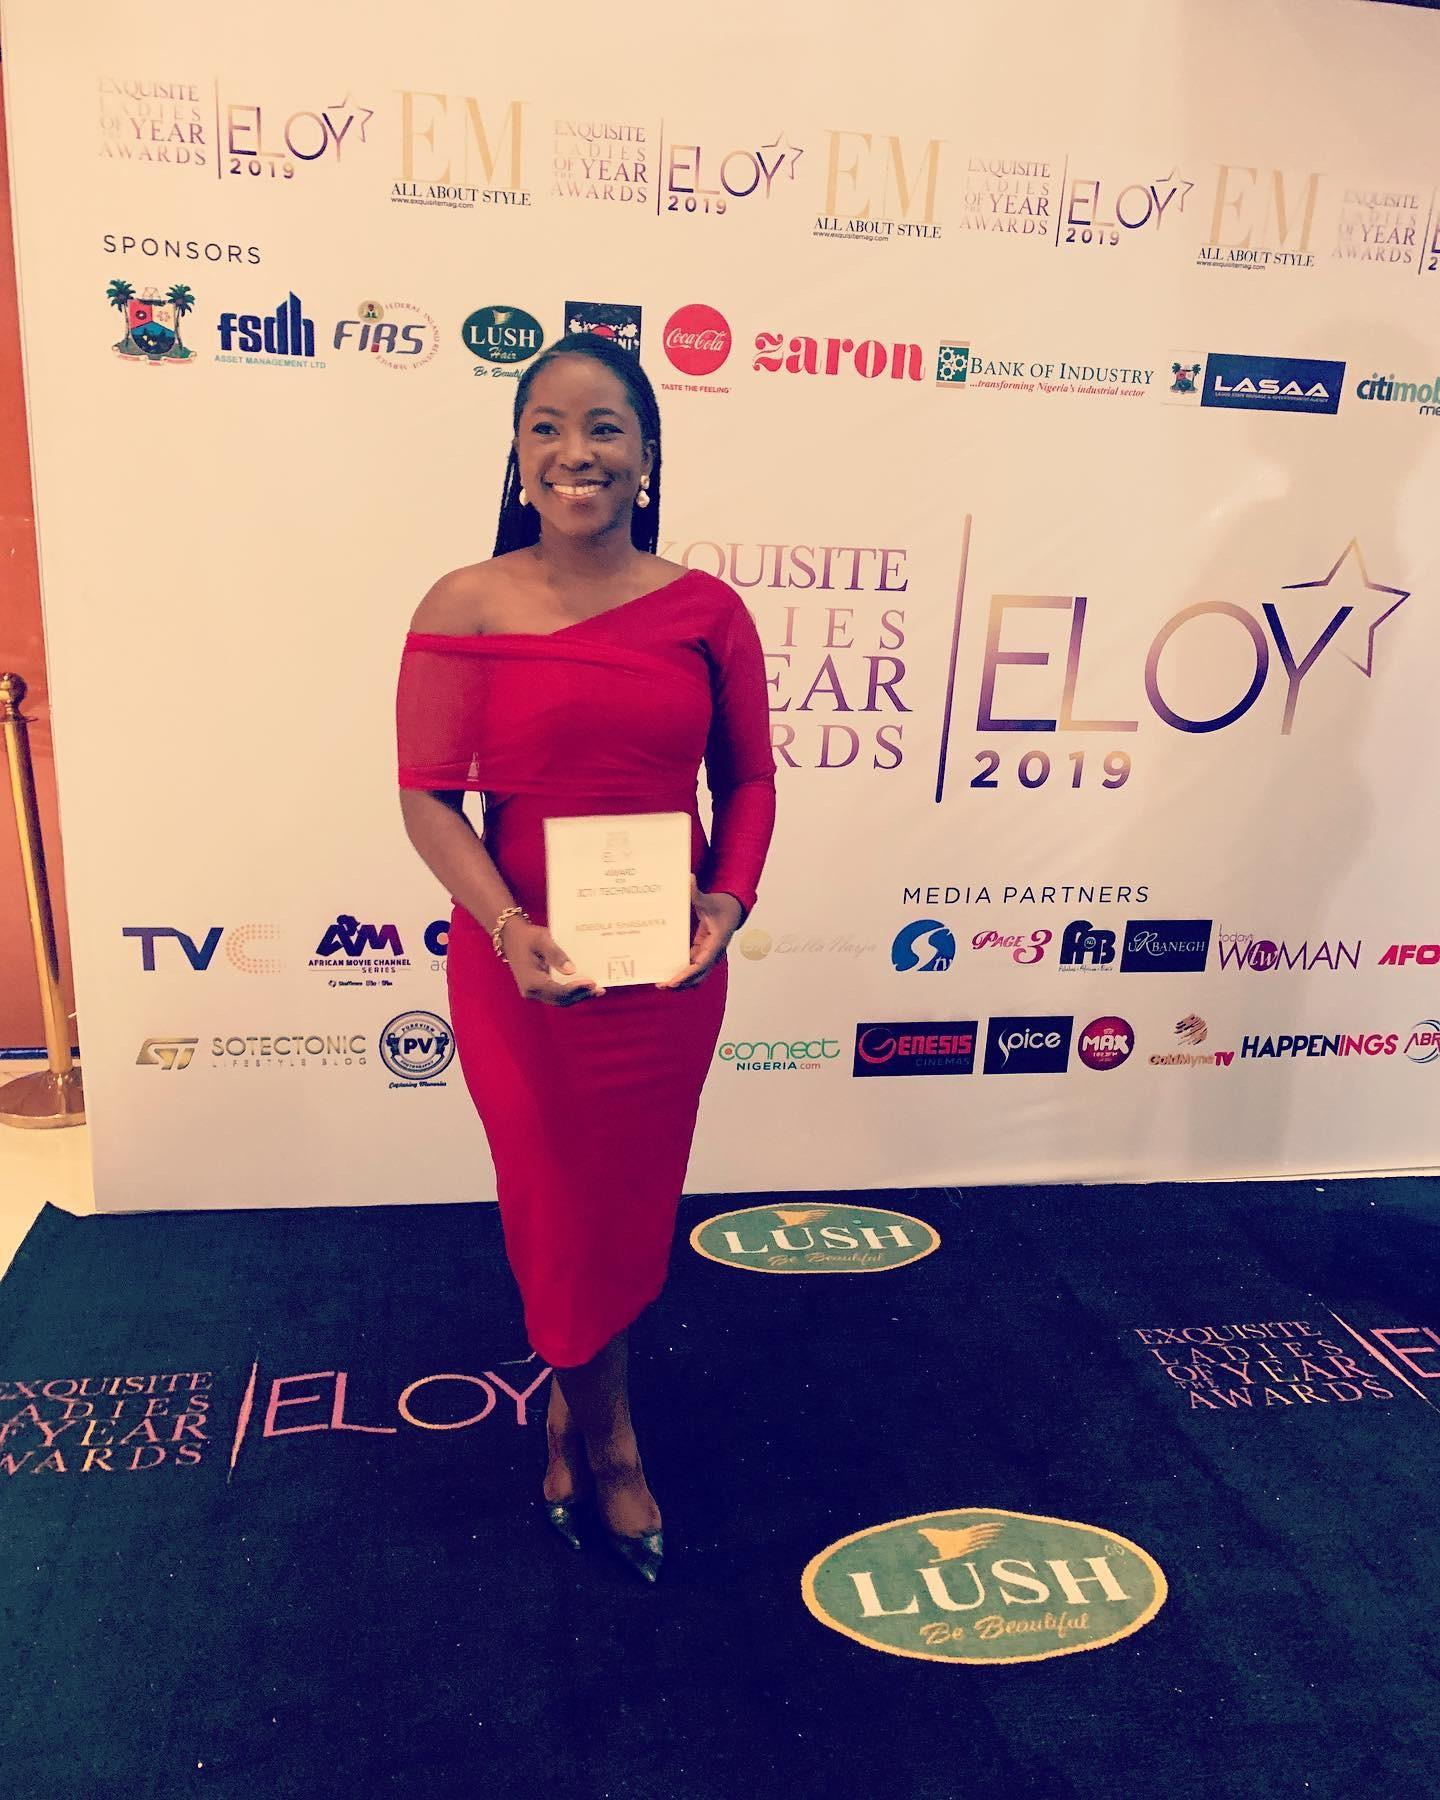 Read more about the article From 25under25 to Exquisite Lady of the Year (ELOY)